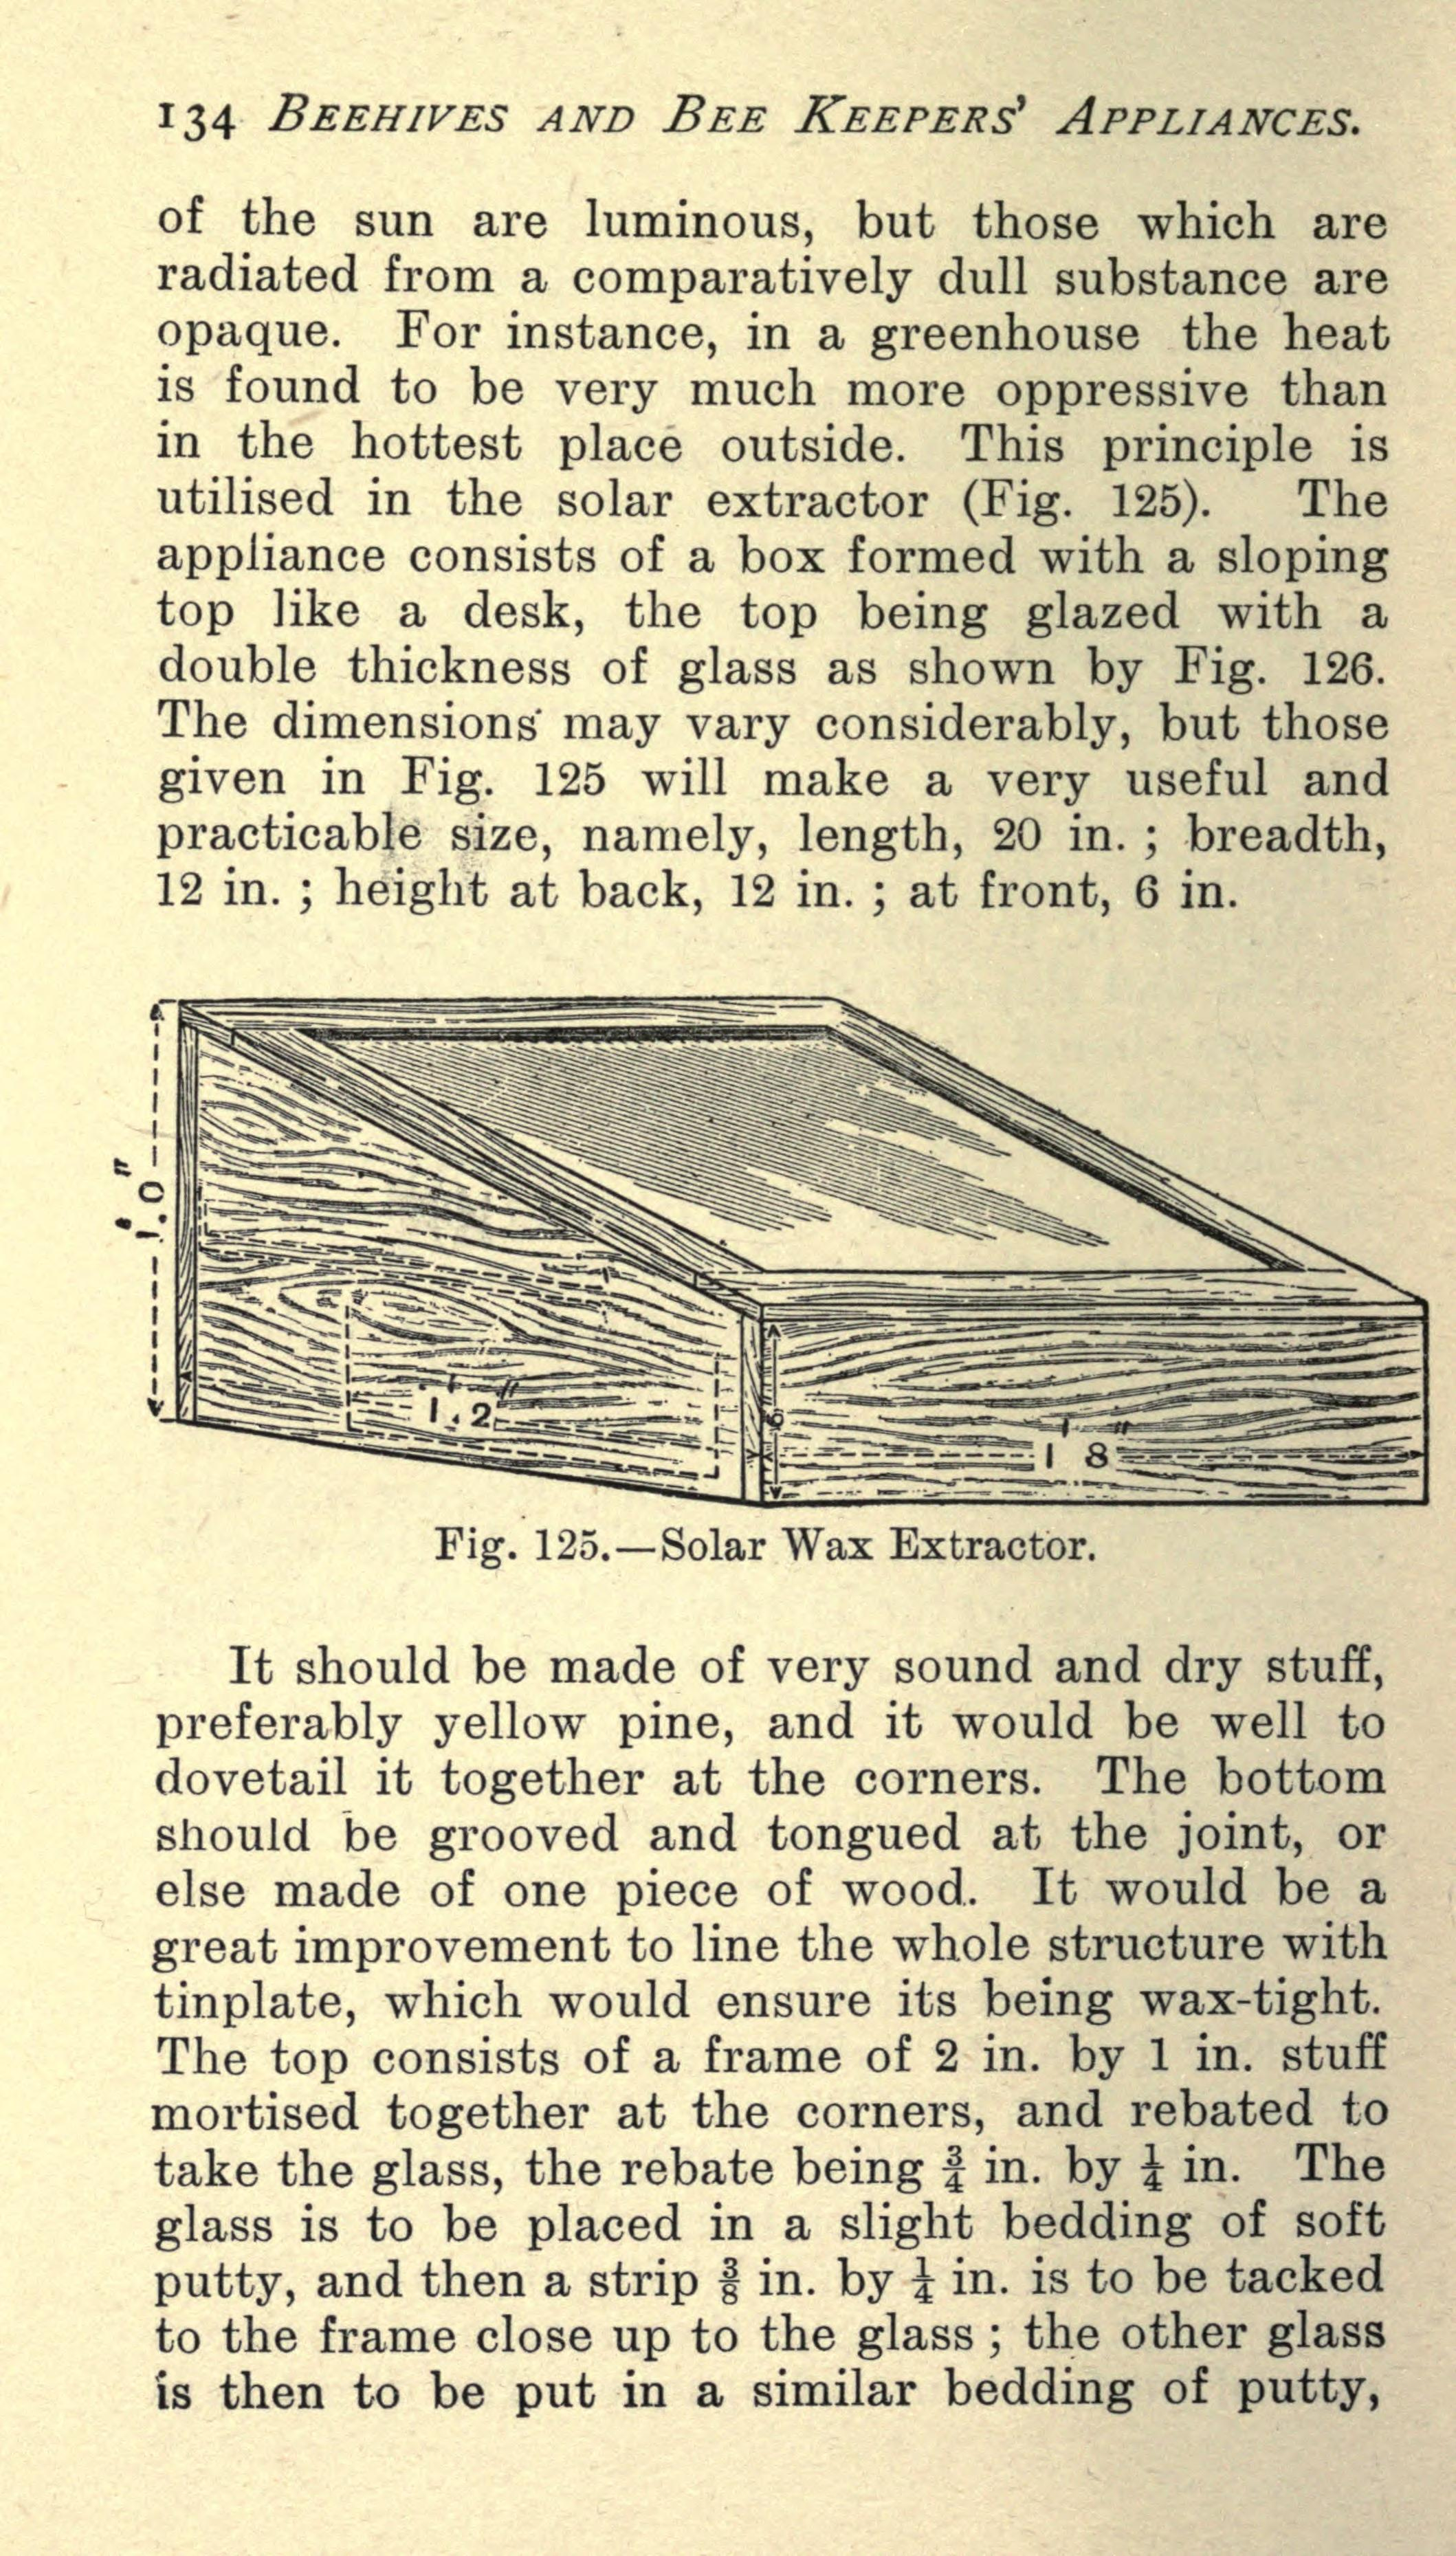 File:Beehives and bee keepers' appliances (Page 134) BHL18225371.jpg